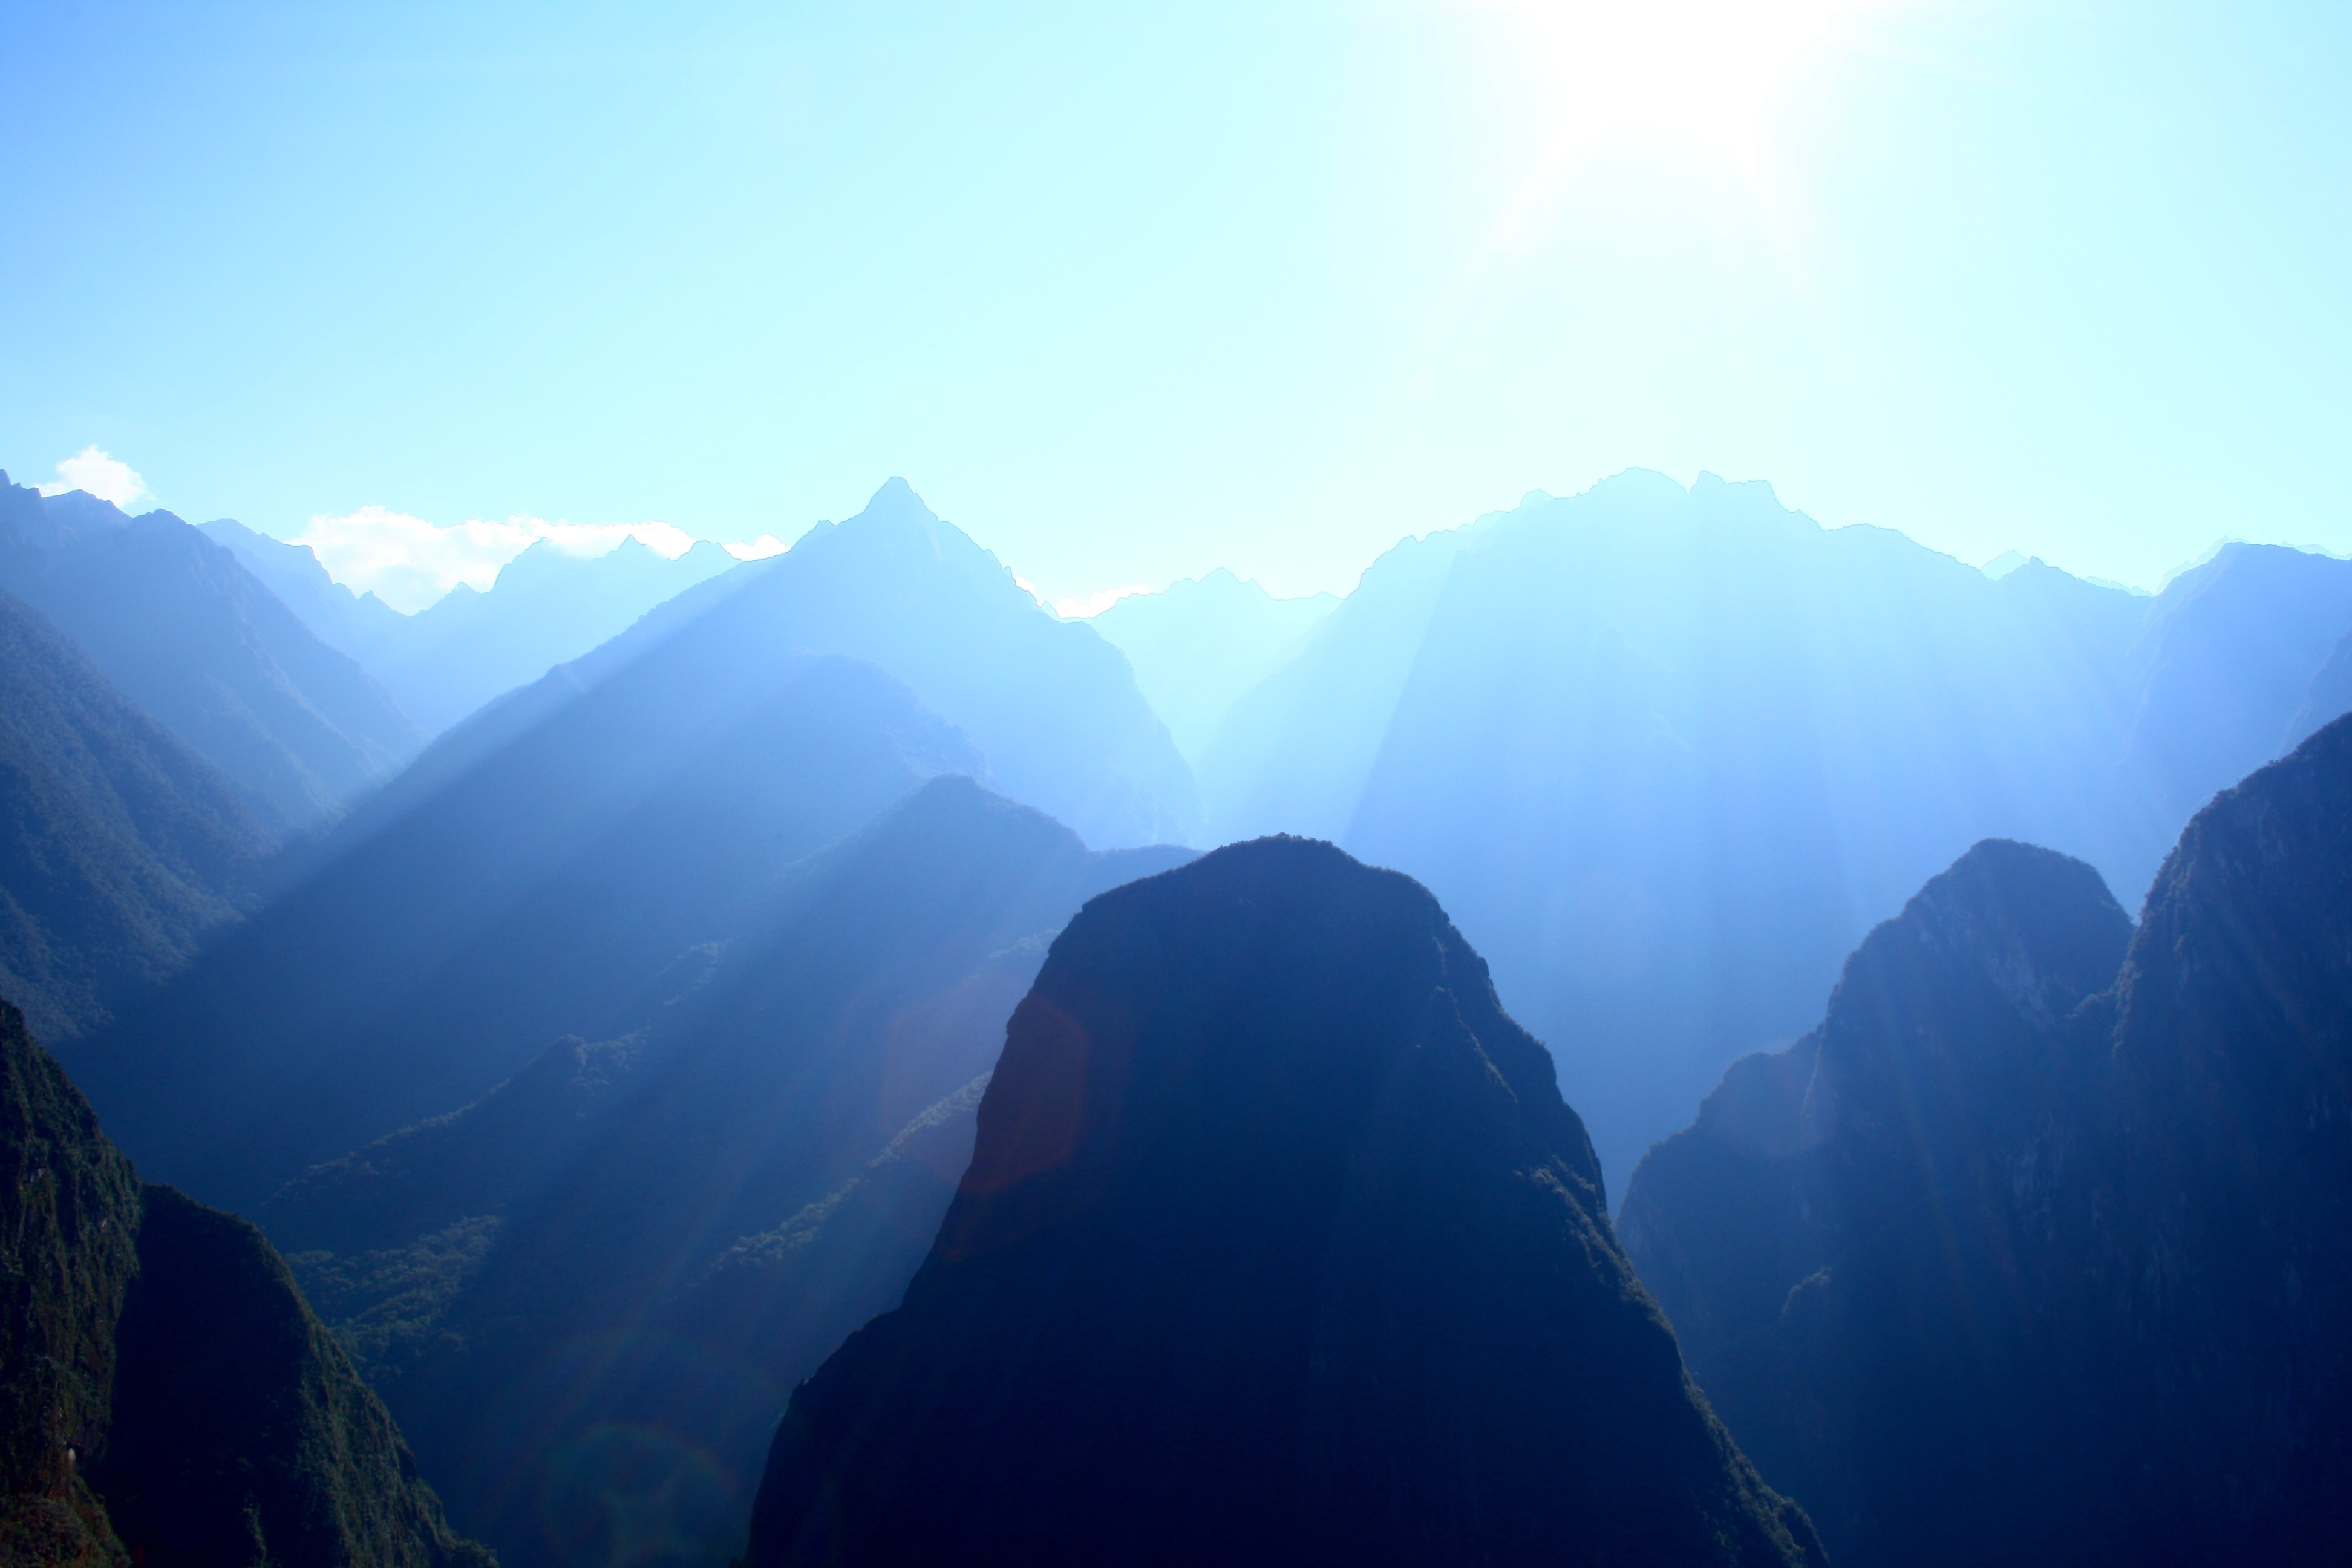 Sunlight fills green mountain valleys near Machu Picchu